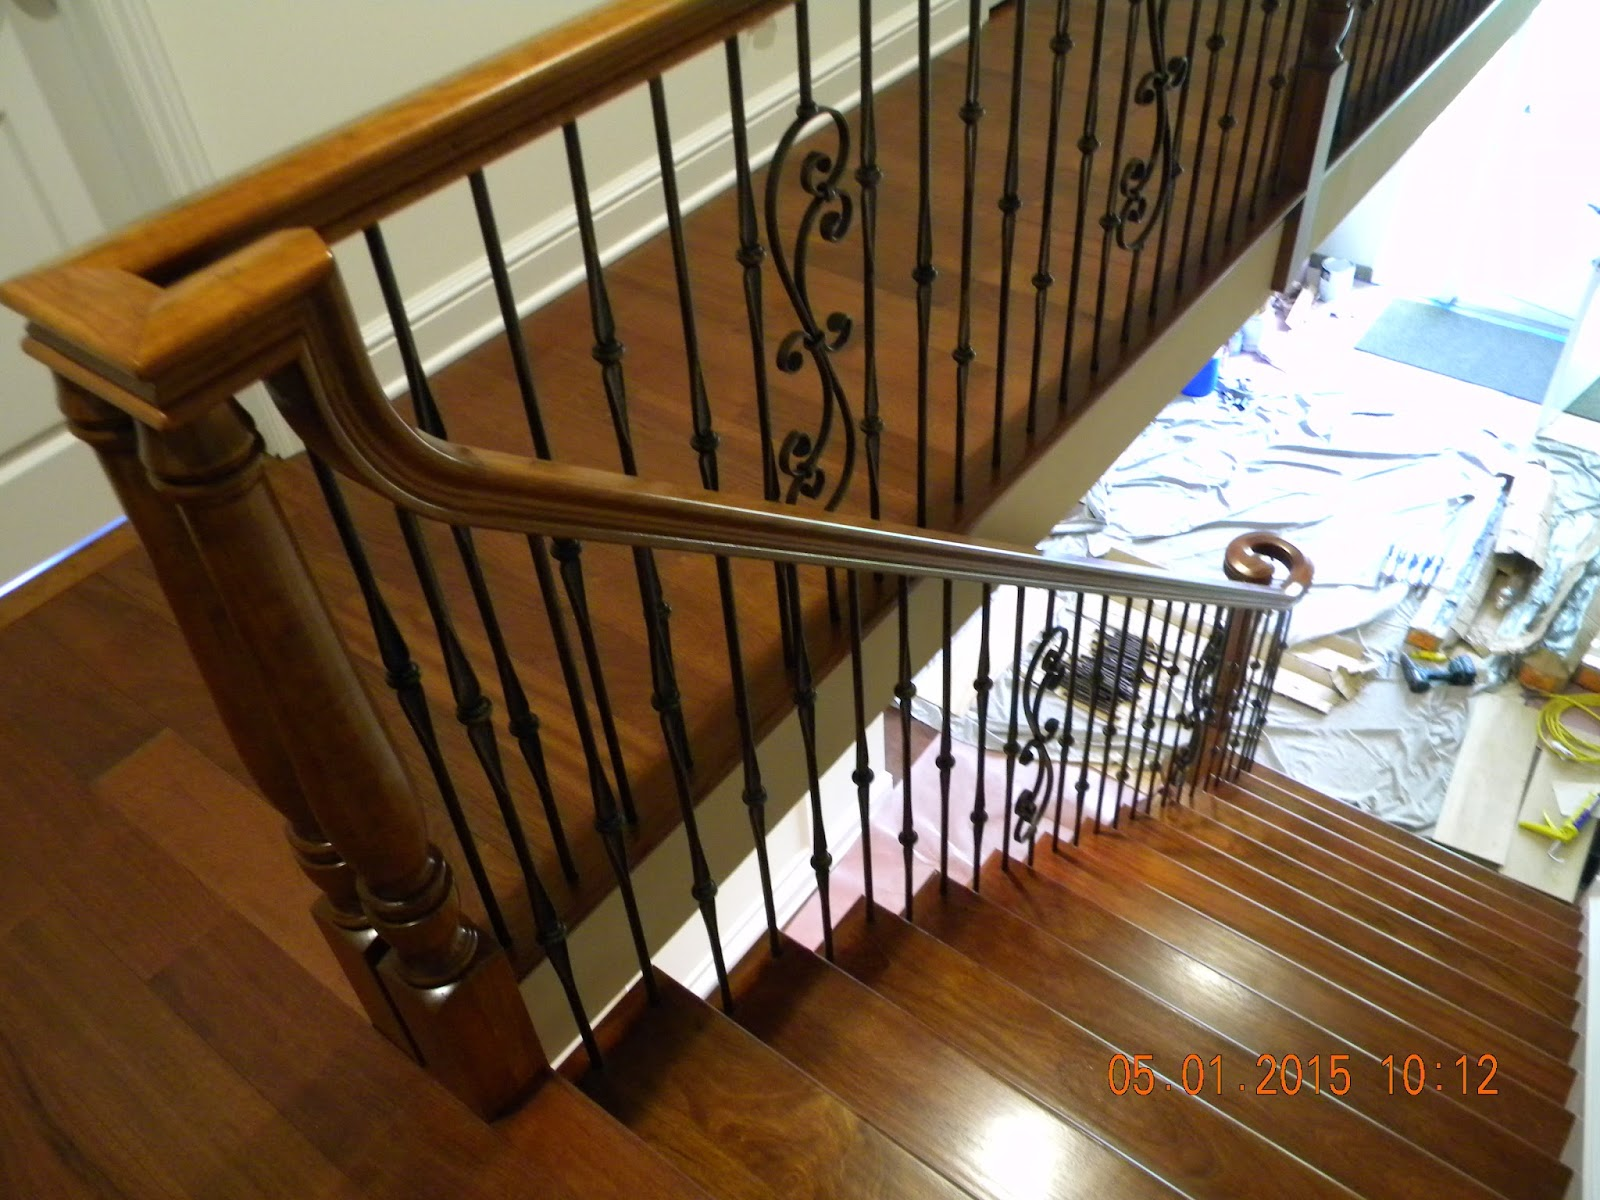 Brazilian Cherry Staircase Oil Rubbed Bronze Iron Balusters Haddon Heights  NJ. After Thirty Years, This Homeowner Decided To Finally Redo His Foyer  The Way ...